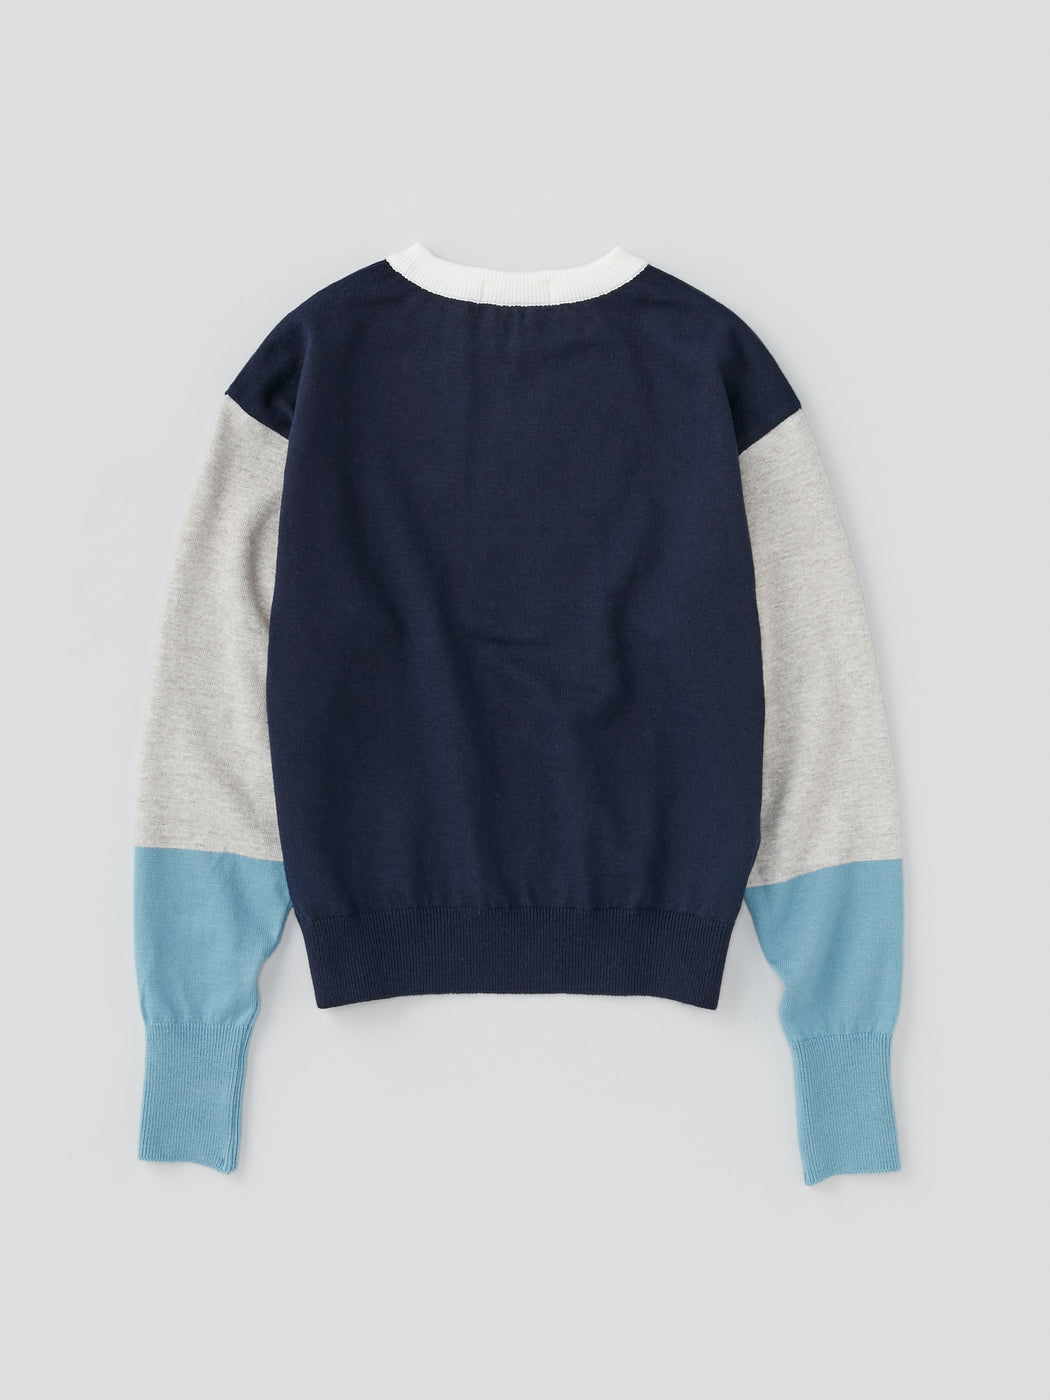 ALOYE G.F.G.S. Women's Cotton Knitted Wide Sweater Navy Color Block